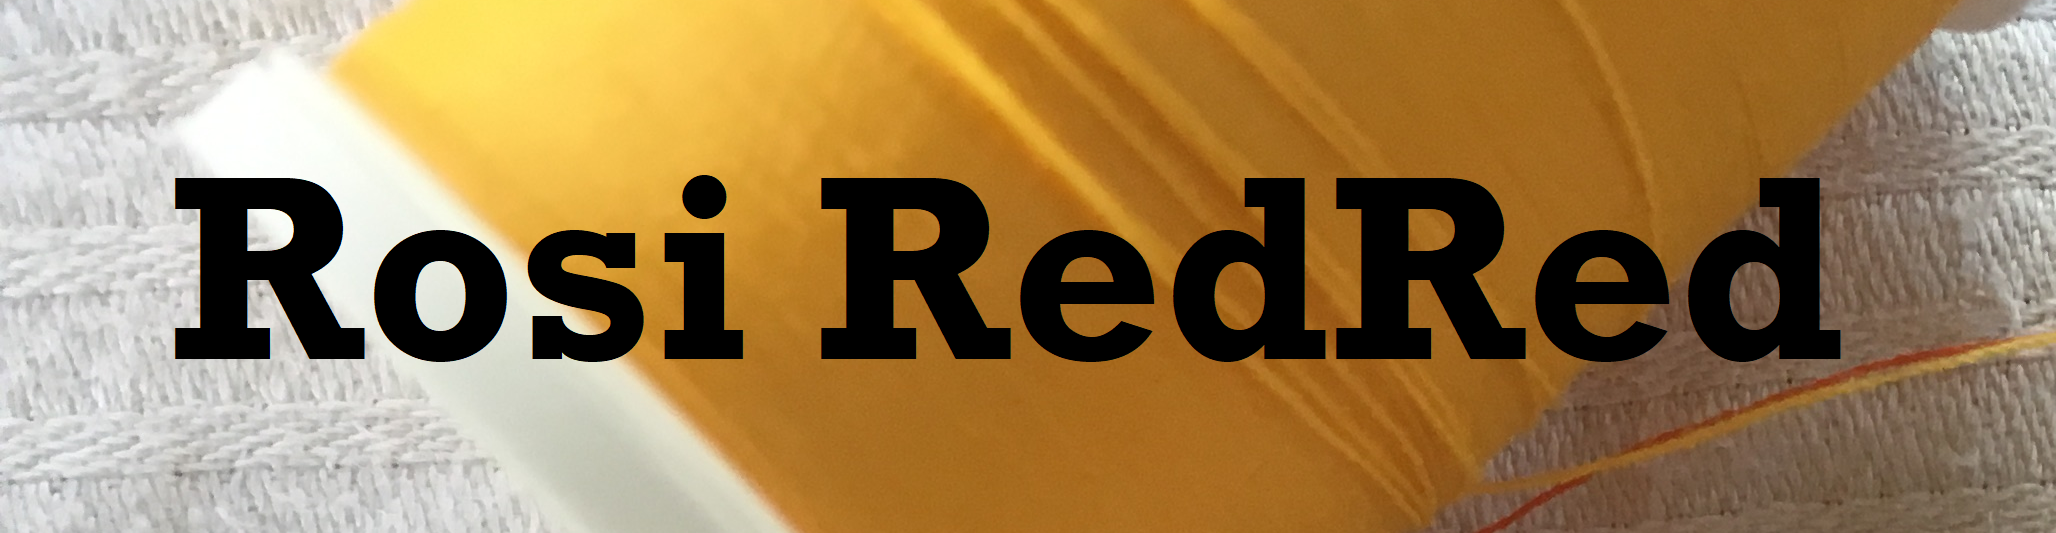 RosiRedRed Logo.png